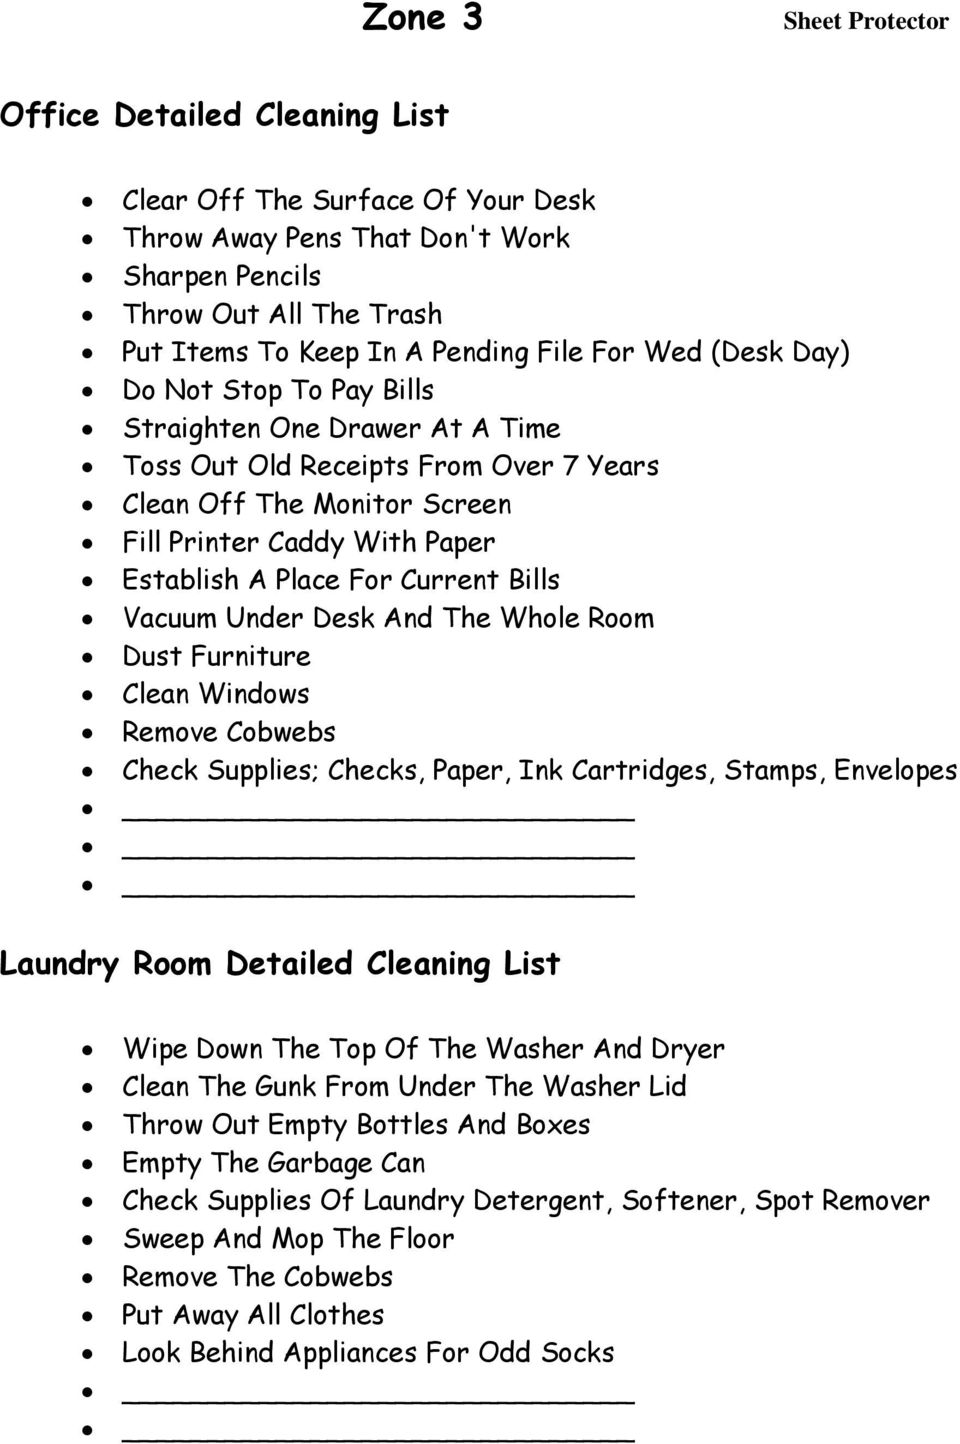 Current Bills Vacuum Under Desk And The Whole Room Dust Furniture Clean Windows Remove Cobwebs Check Supplies; Checks, Paper, Ink Cartridges, Stamps, Envelopes Laundry Room Detailed Cleaning List